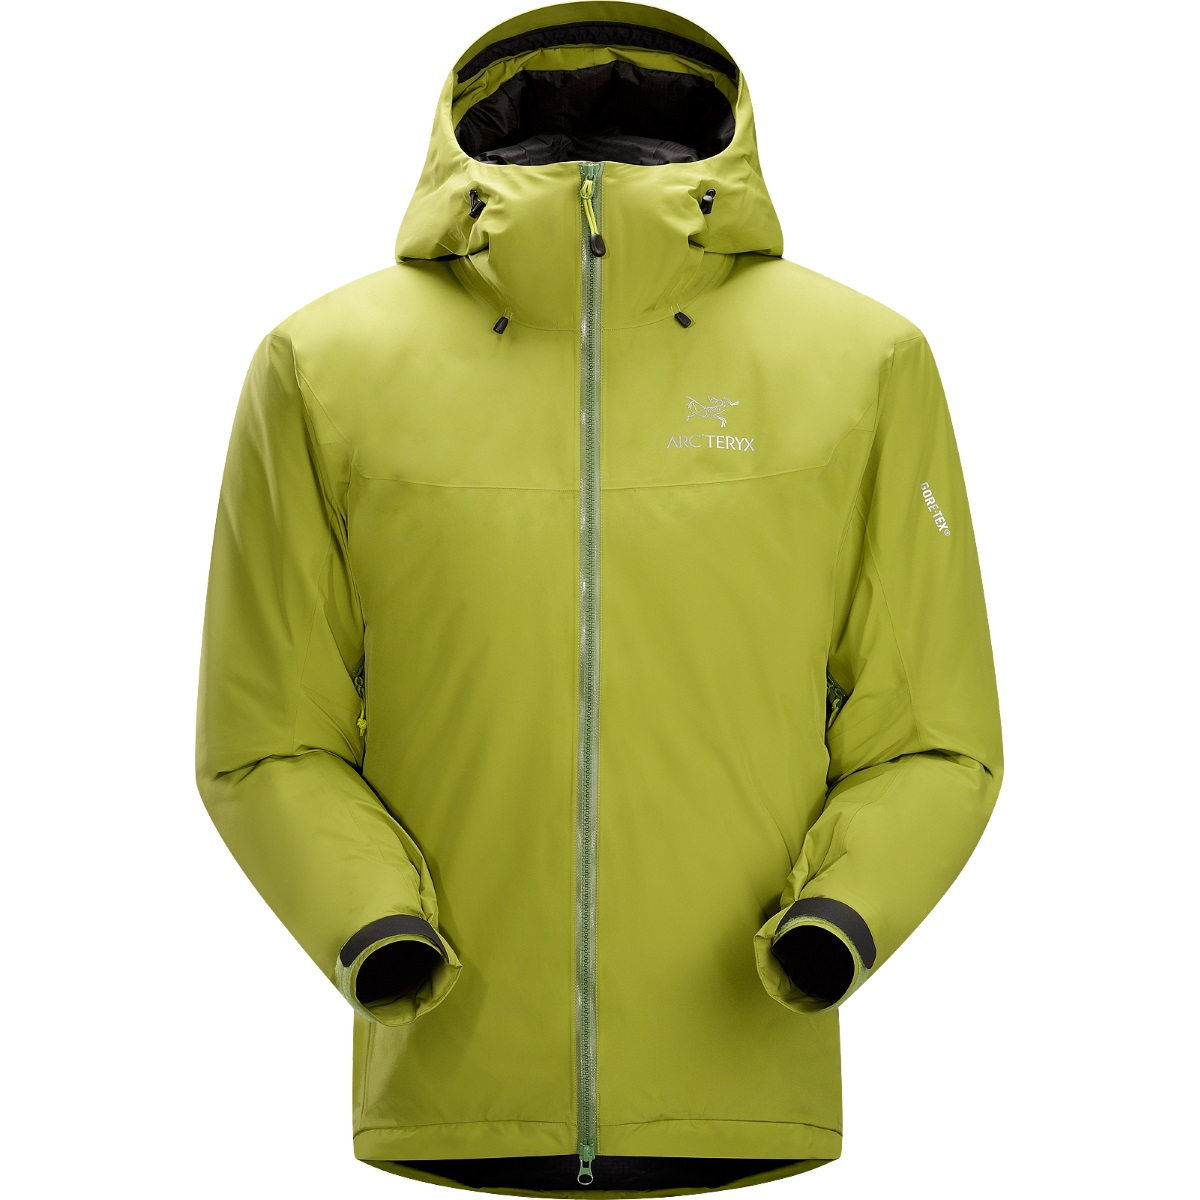 Arc Teryx Fission Sl Jacket Men S Discontinued Spring 2014 Colors Free Ground Shipping Waterproof Insulated Jackets Trail Jackets